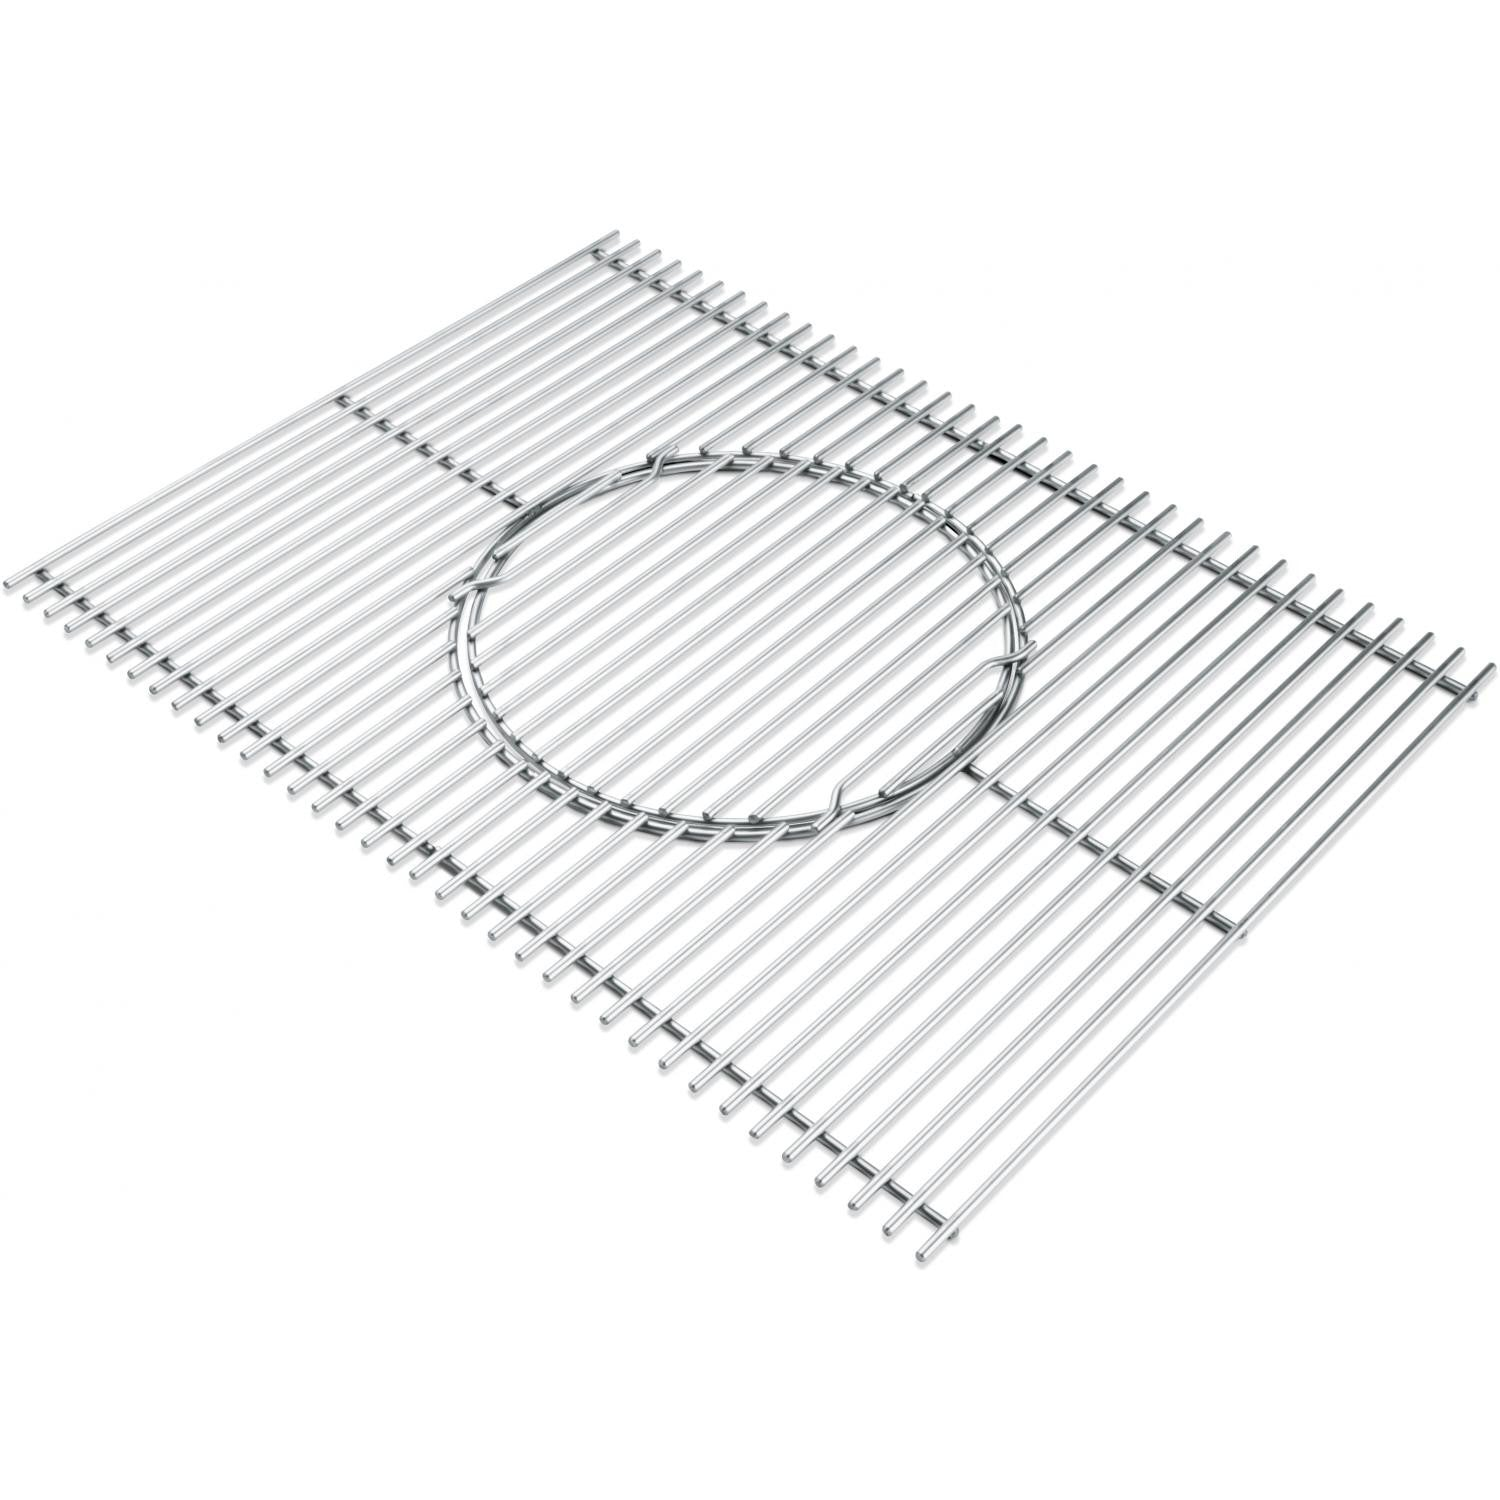 Weber 7587 Stainless Steel Cooking Grate For Genesis 300 Series Gas Grills